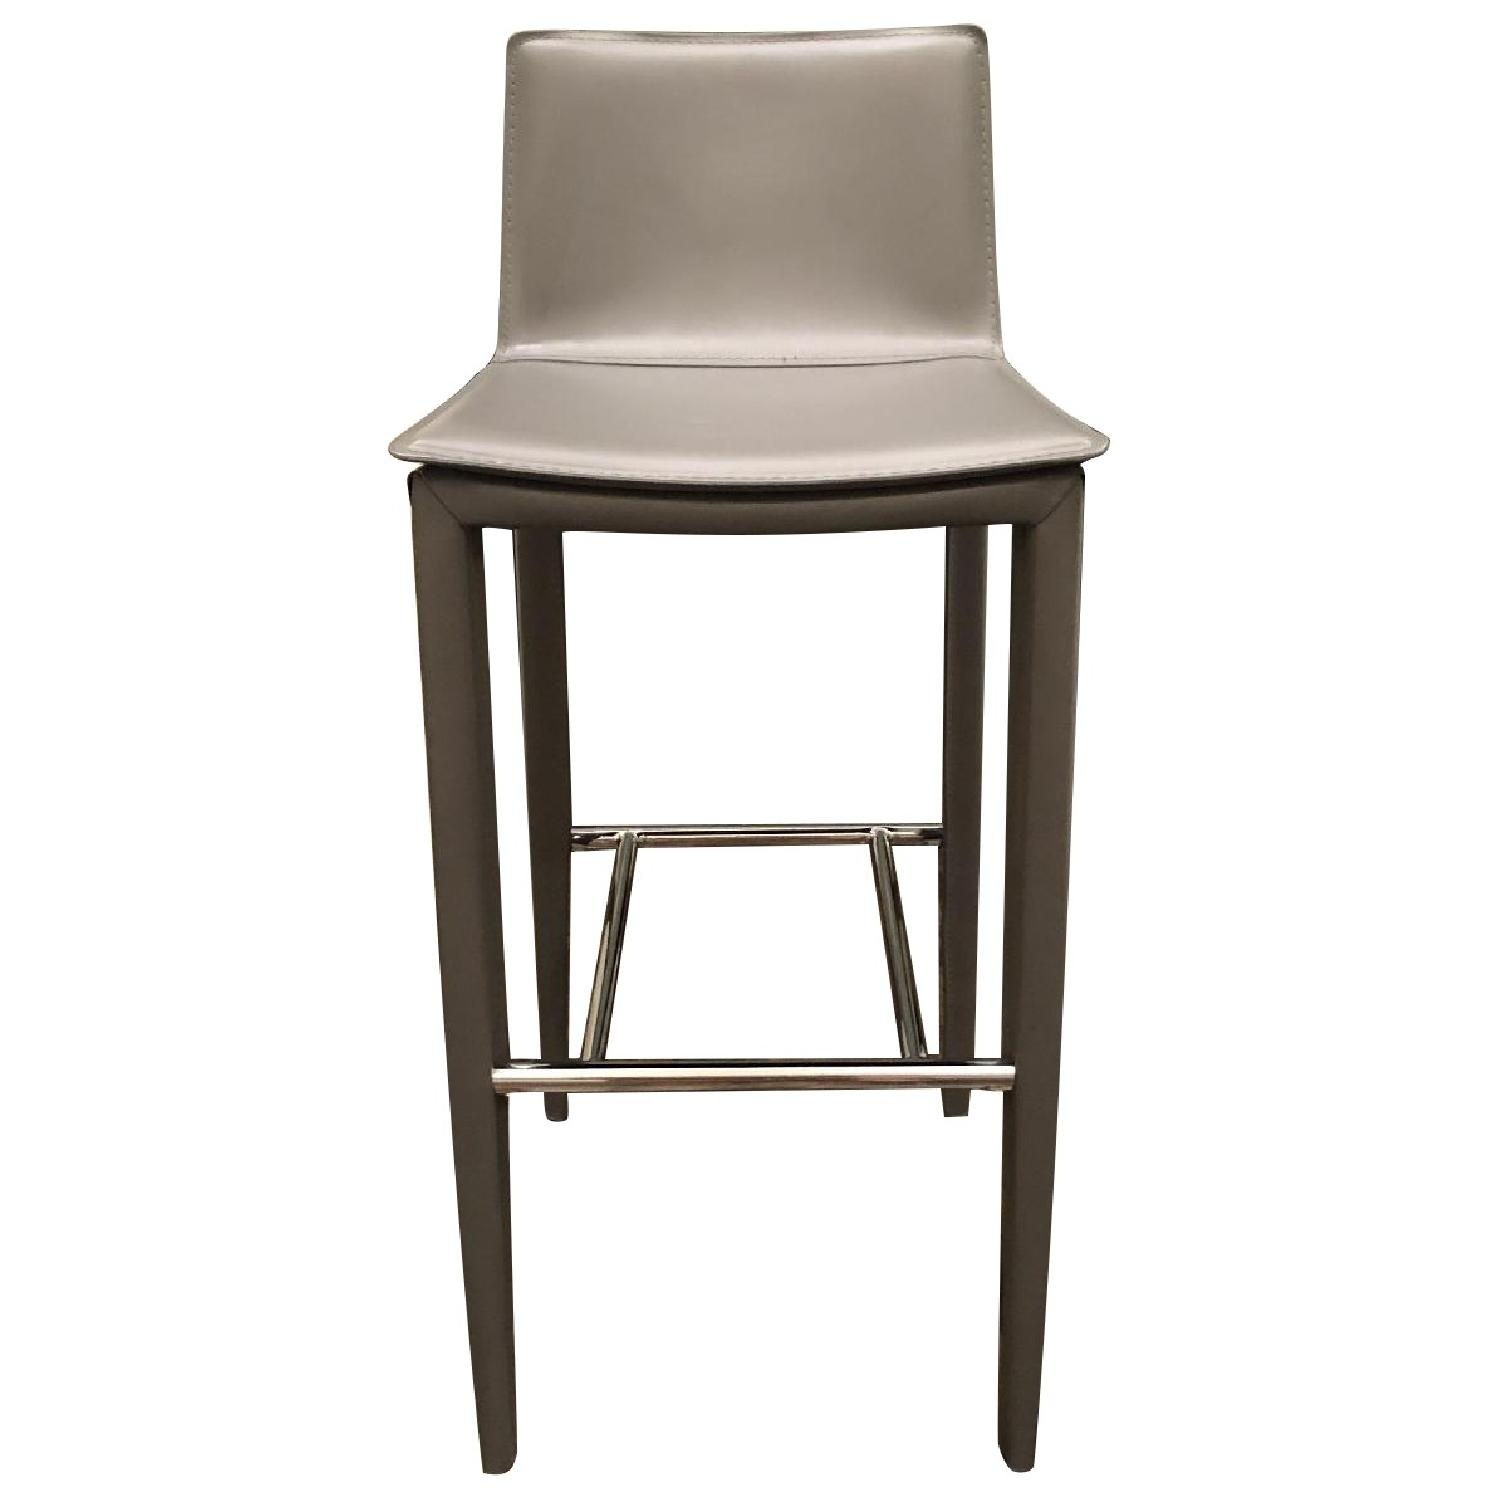 Cite NYC Bonded Leather Bar Stools - image-0